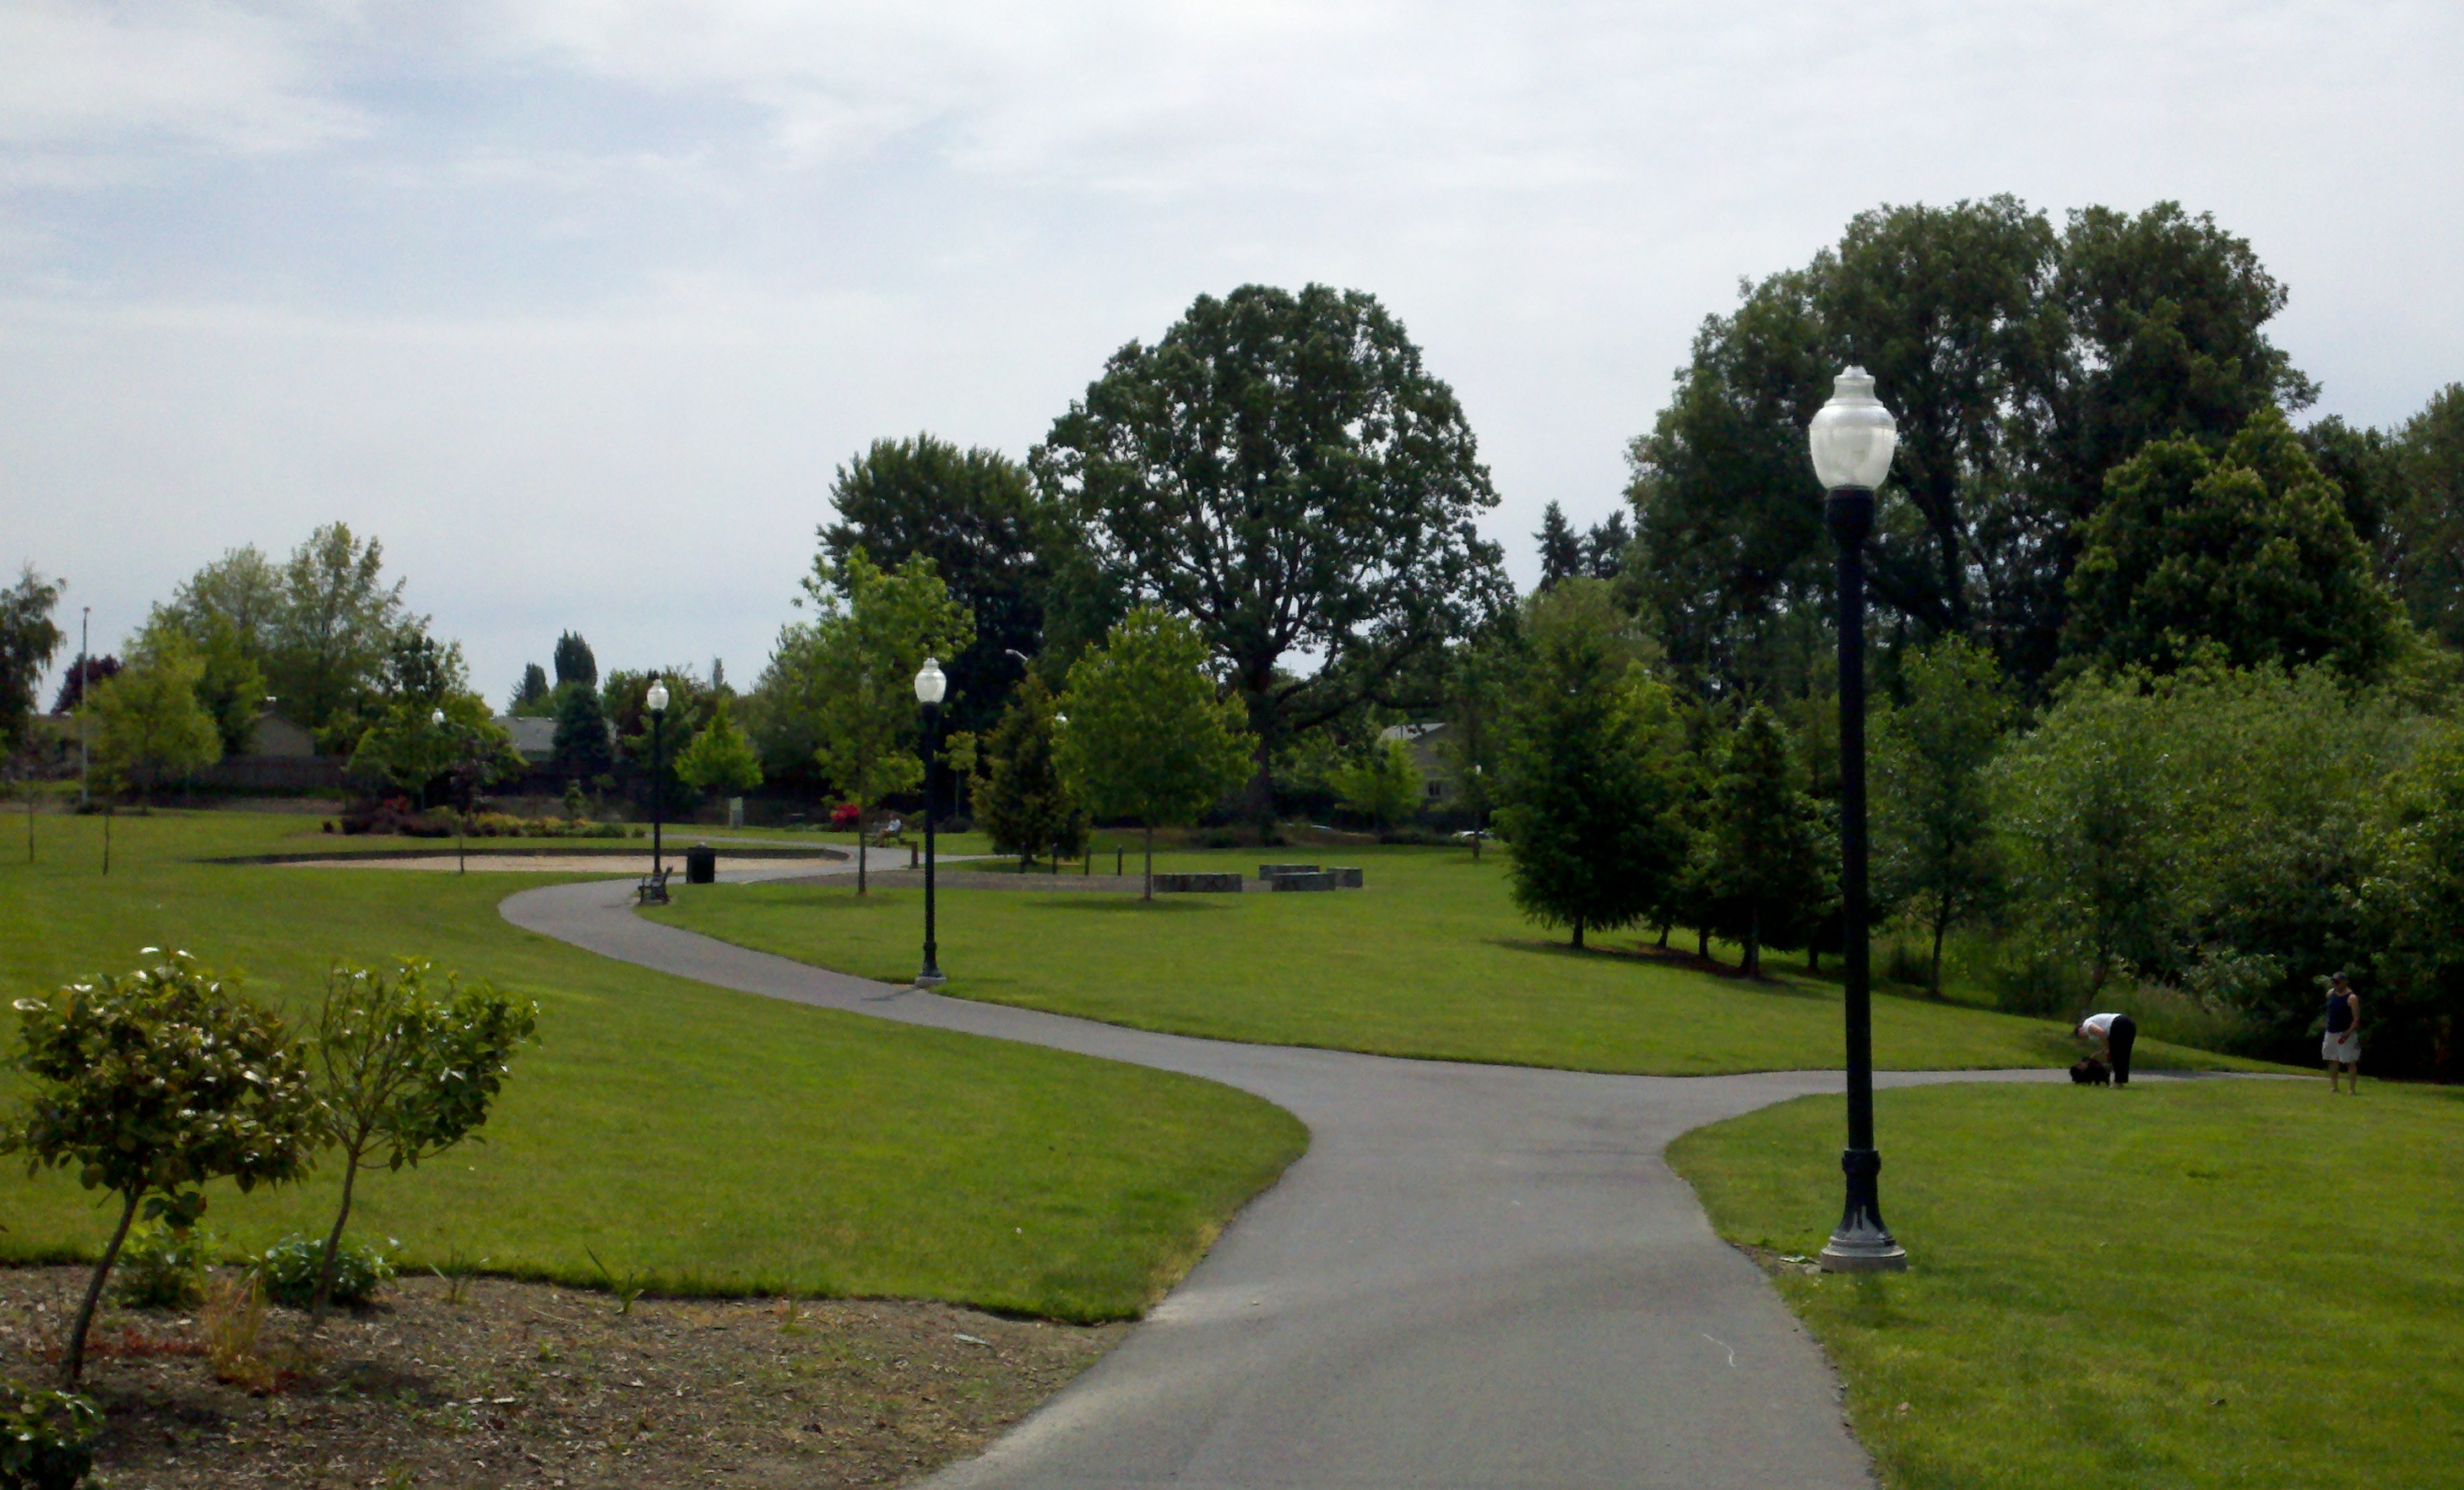 Francis Street To Dog Park Where Community Ggsrden Is